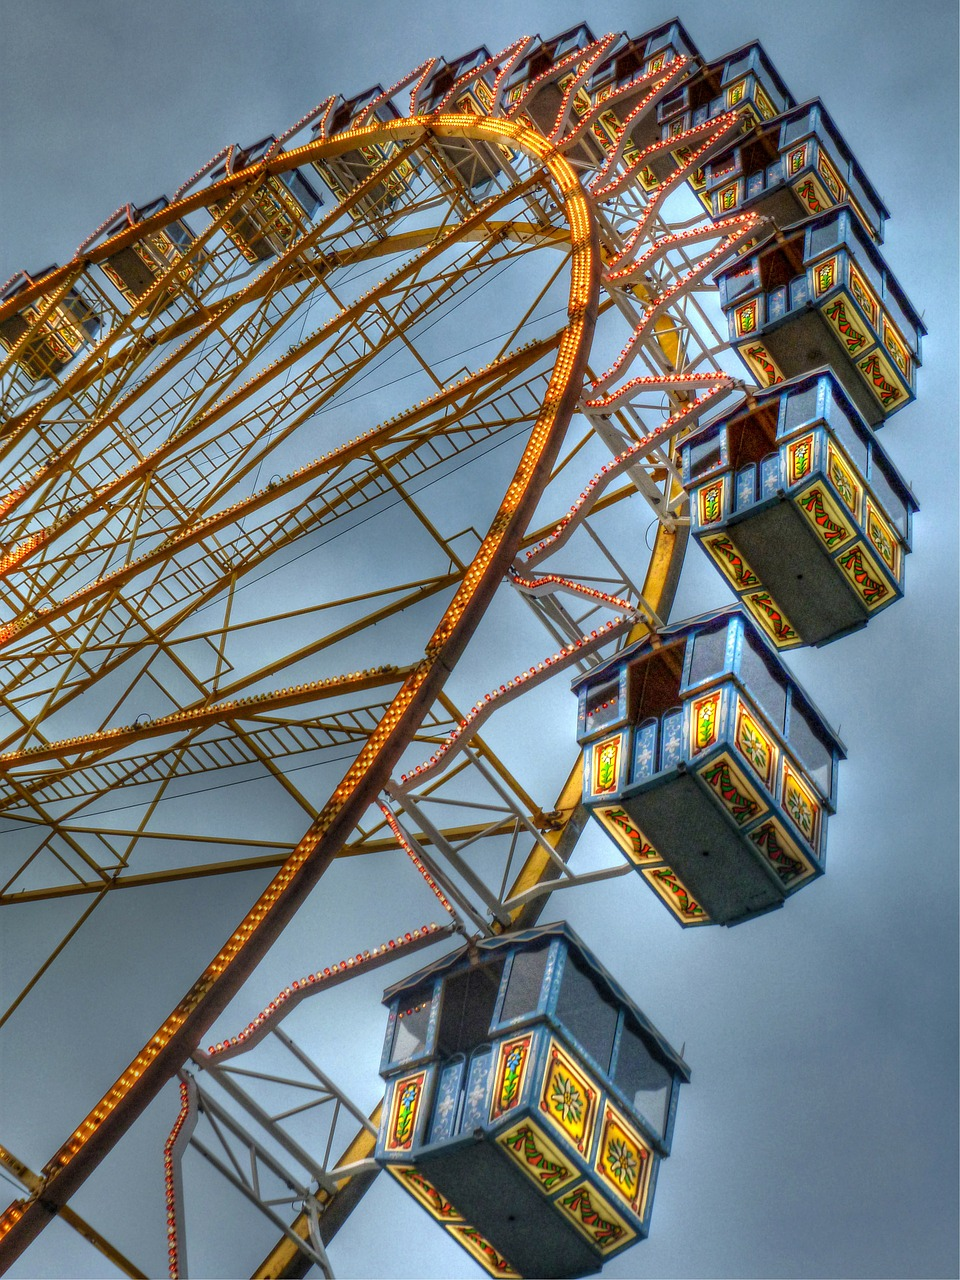 fair,folk festival,dom,ferris wheel,carnies,rides,buden,free pictures, free photos, free images, royalty free, free illustrations, public domain